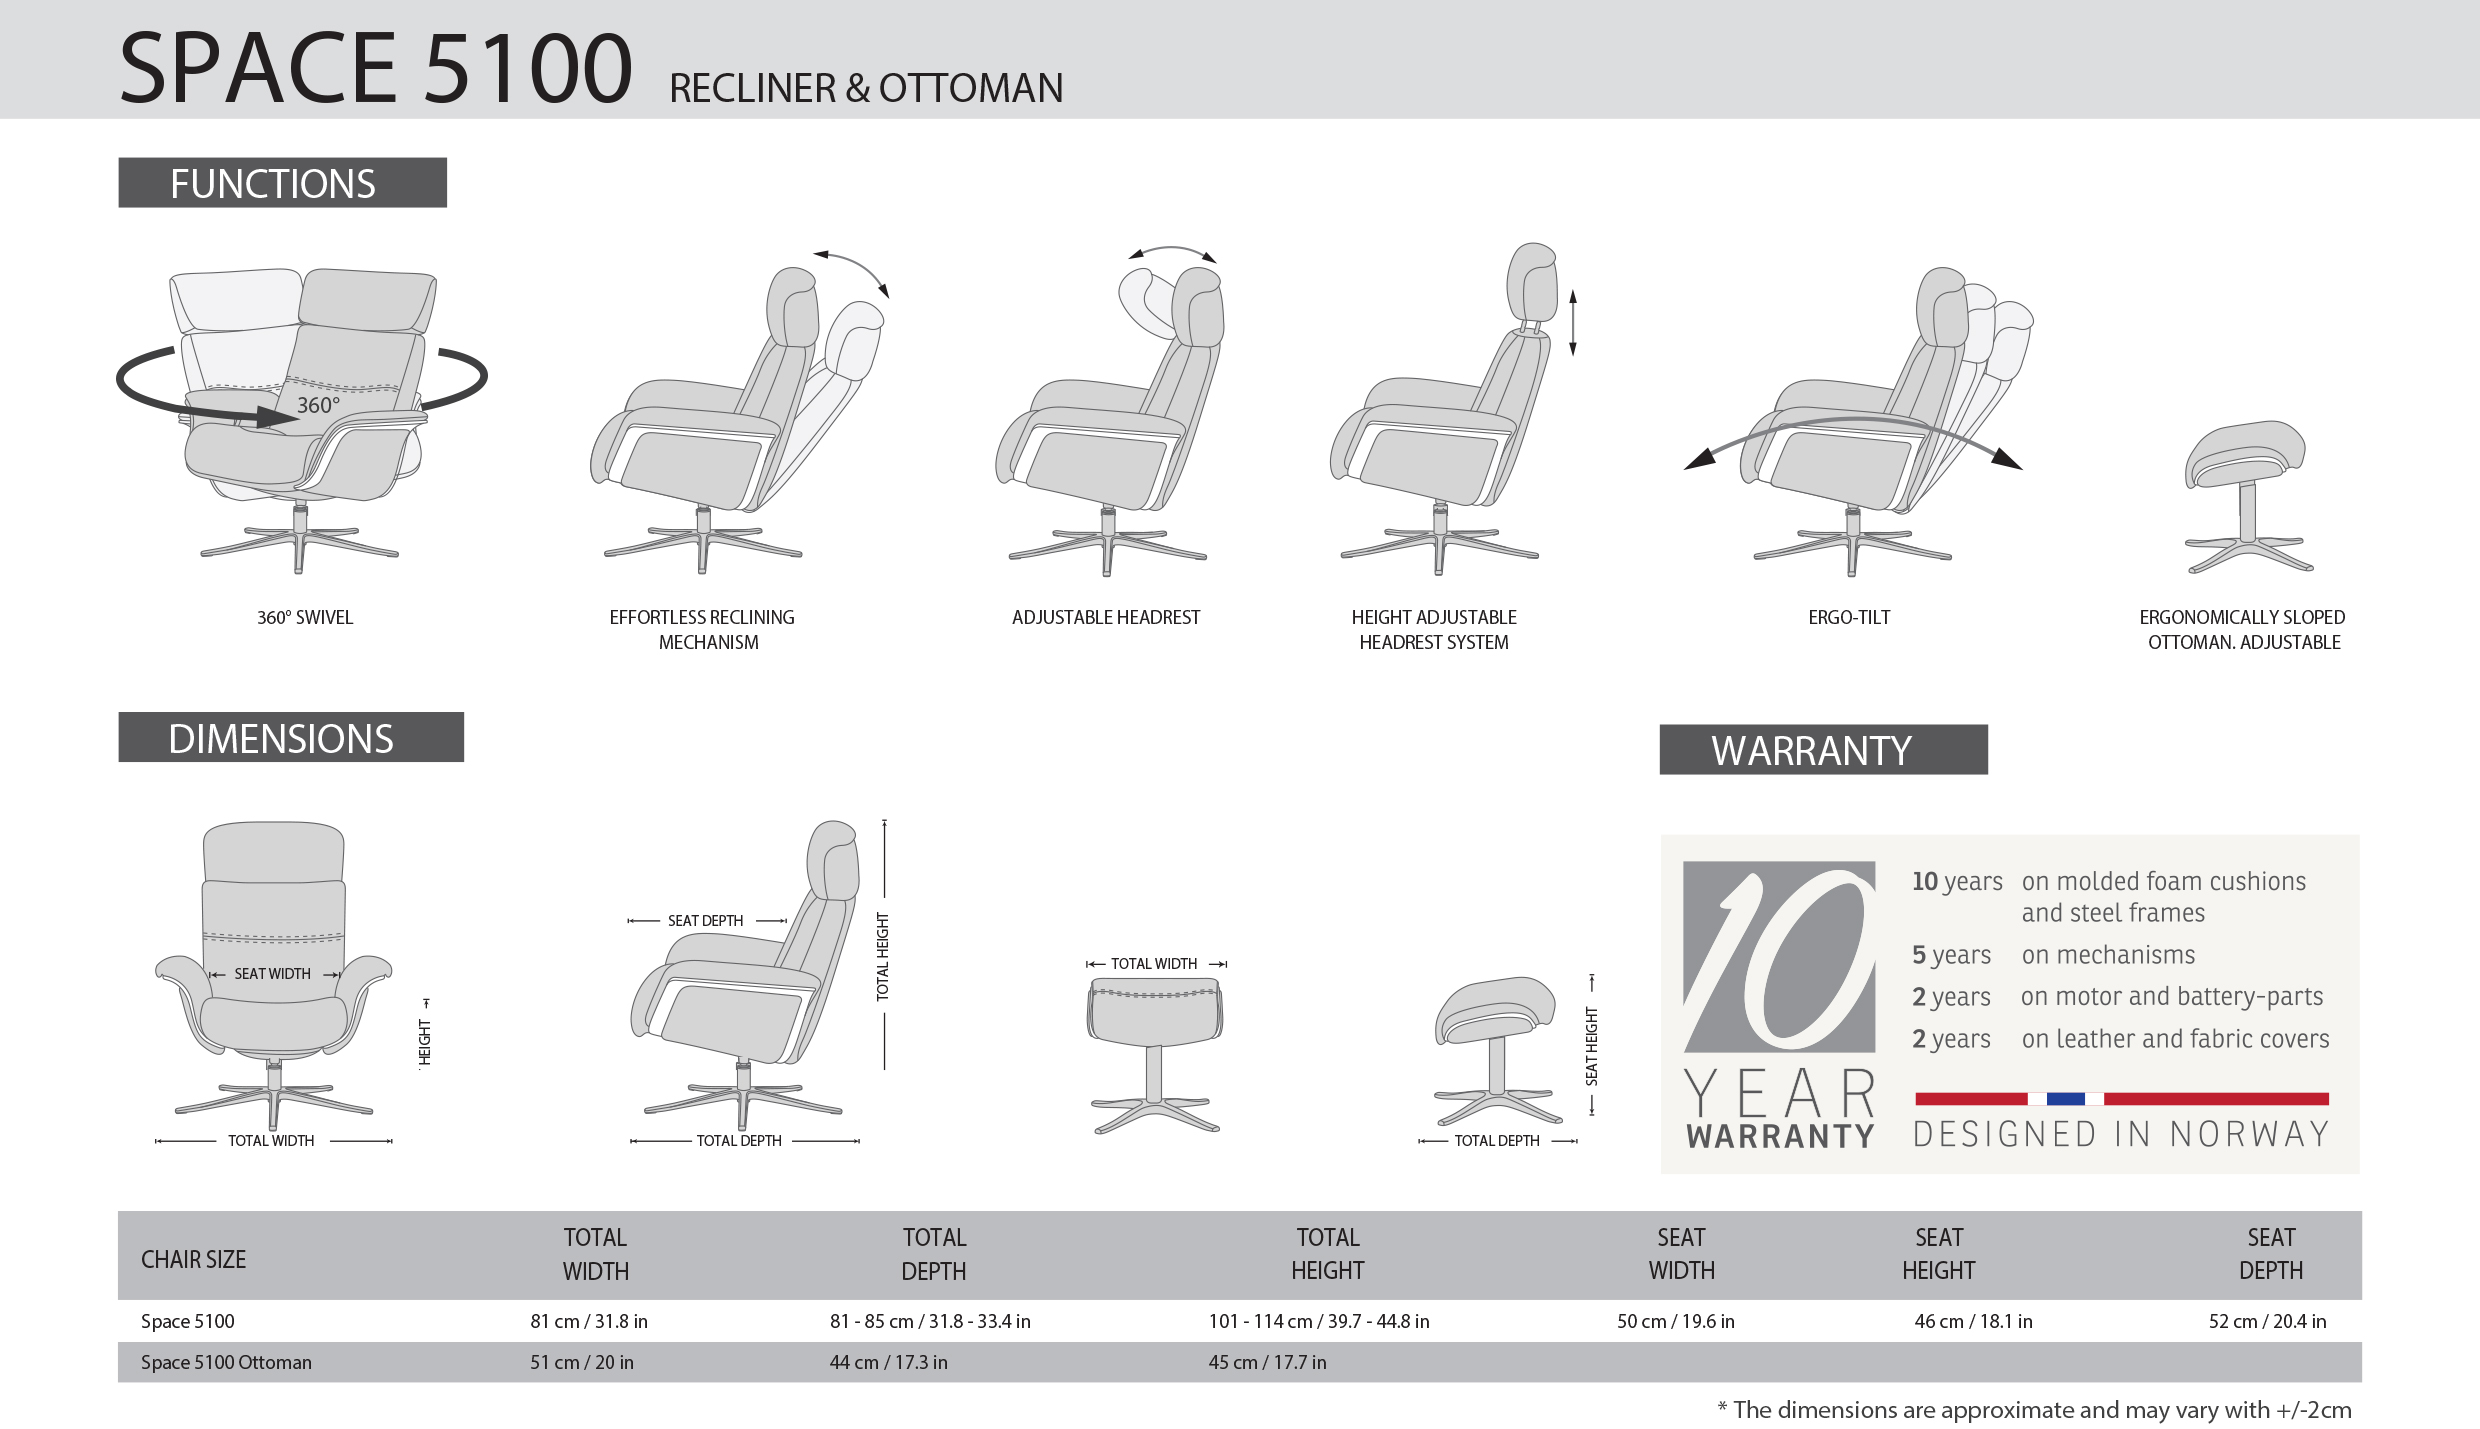 IMG Space 5100S ET Recliner Dimensions